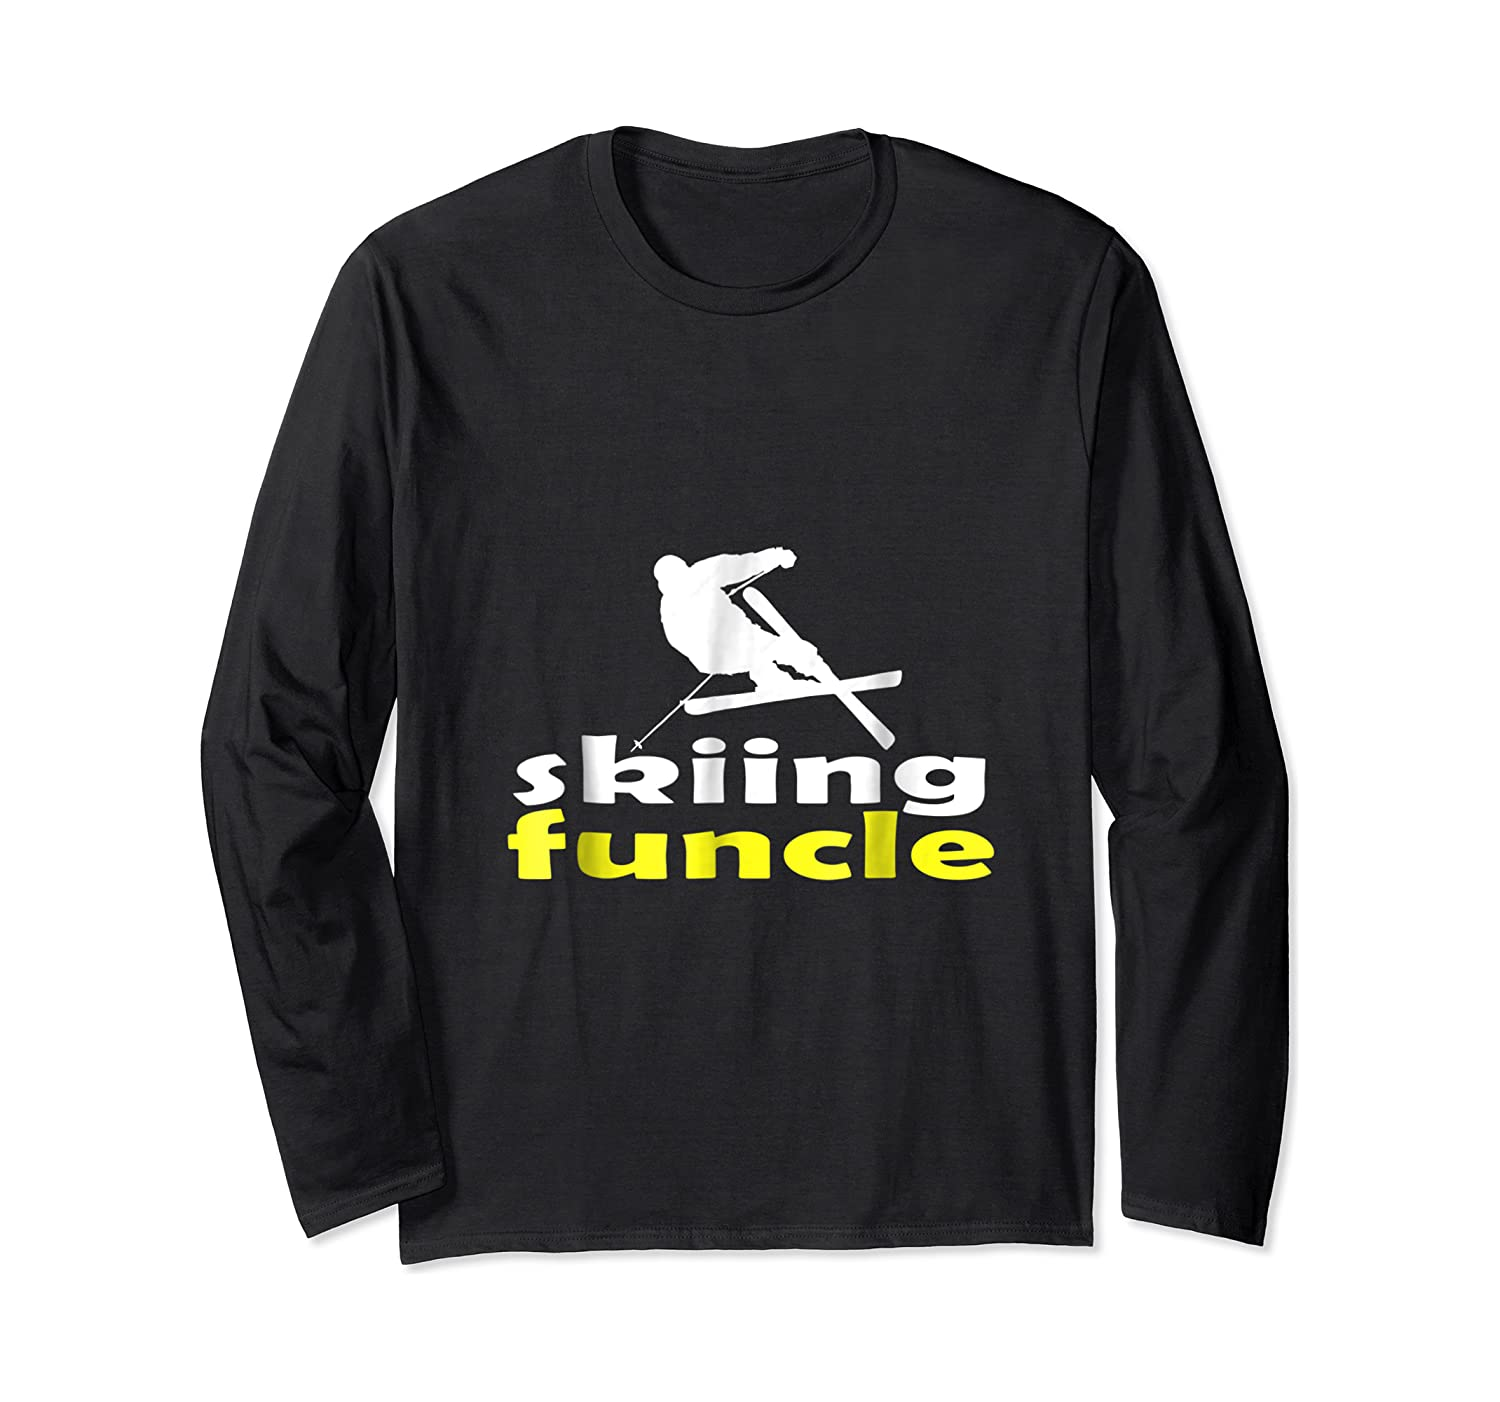 S Skiing Funcle Shirts Uncle Ski Gifts Definition For S Tee Long Sleeve T-shirt